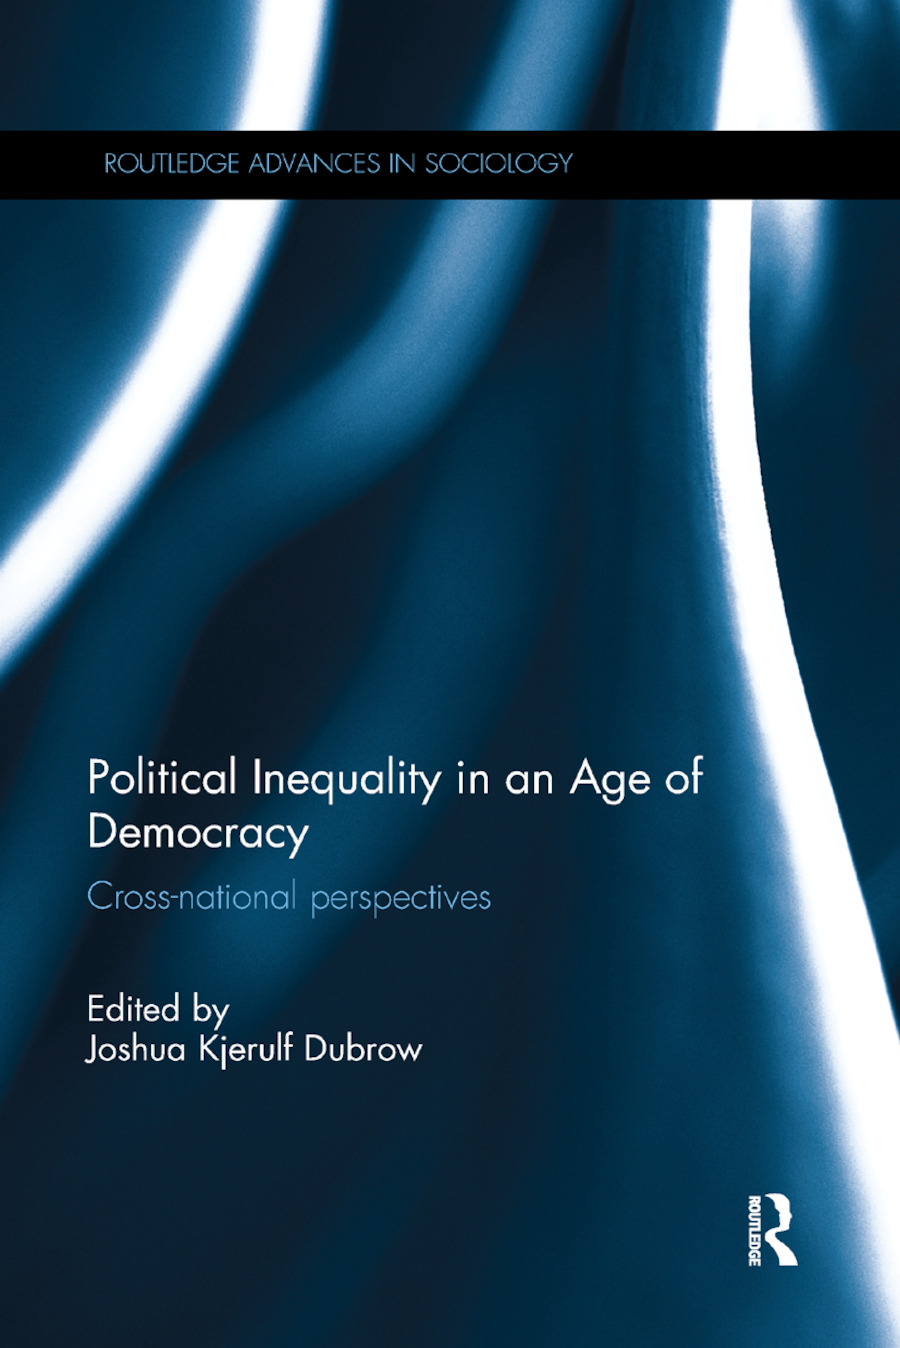 Political Inequality in an Age of Democracy